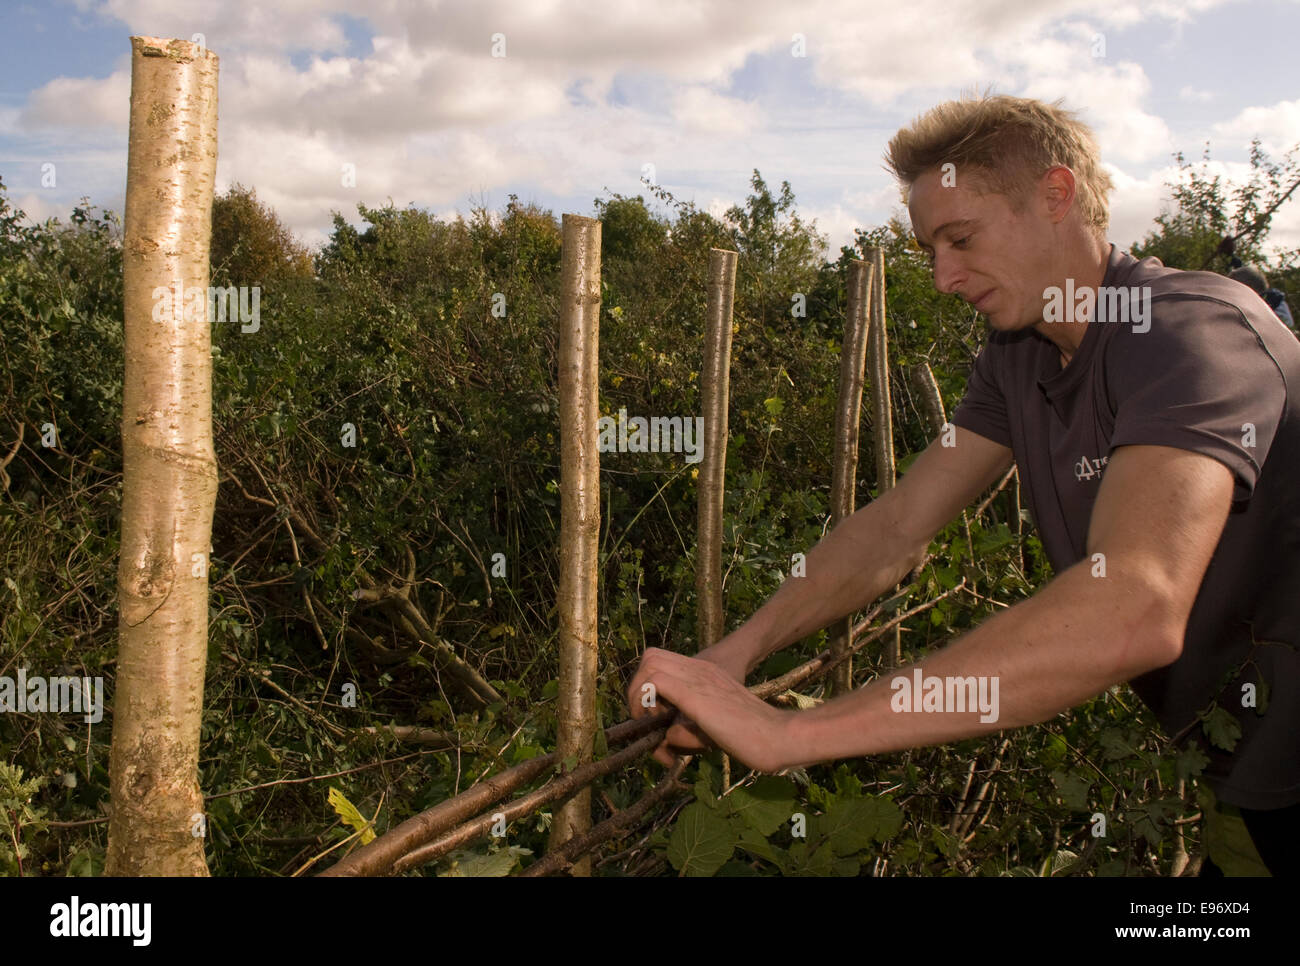 Man taking part in the Hampshire Hedgelaying Championships 2014, Medstead, Hampshire, UK. - Stock Image